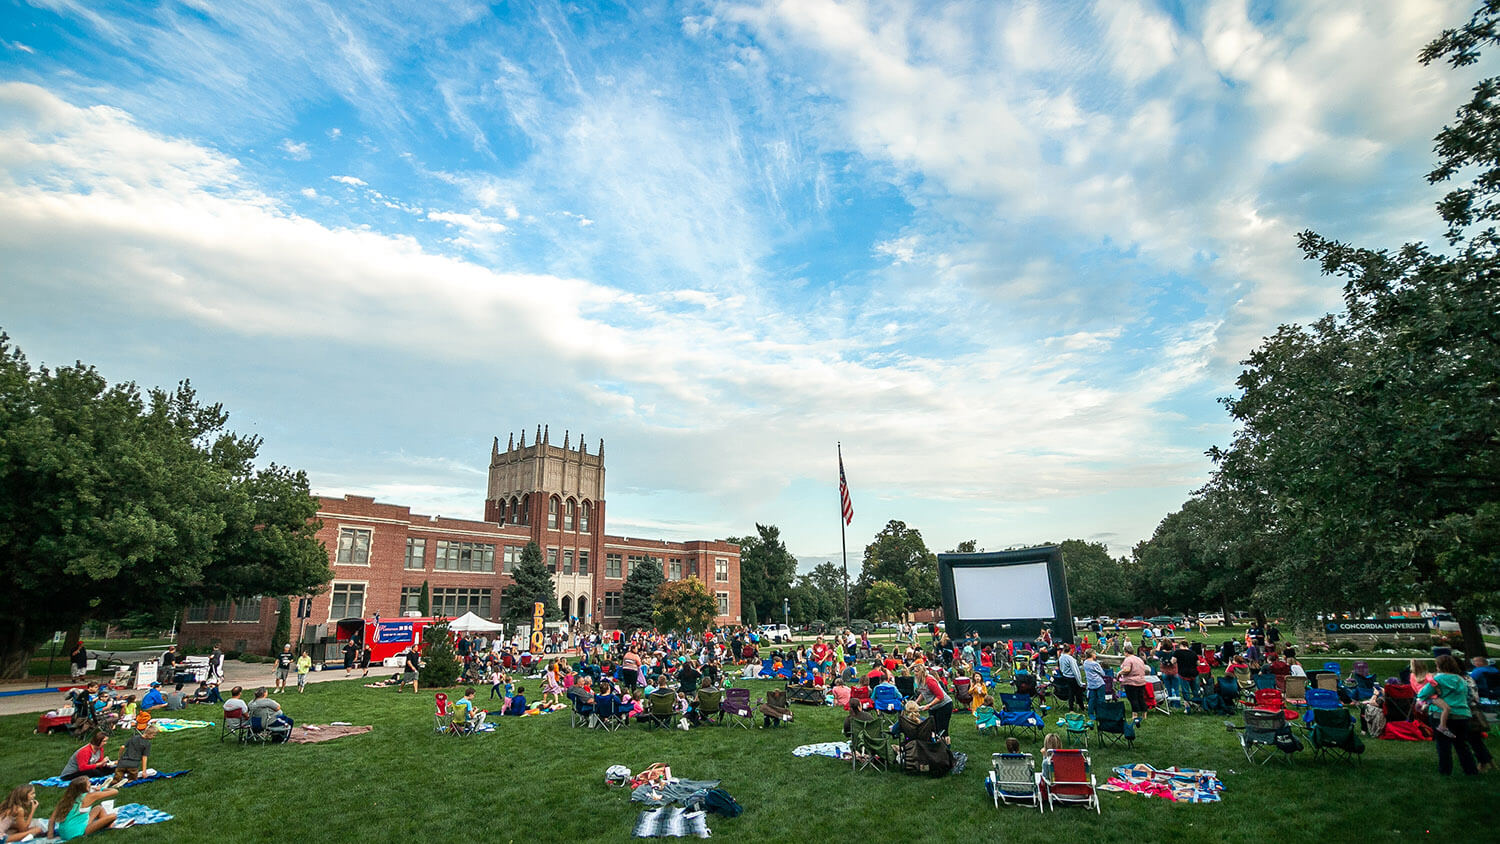 Community_Movie on the Lawn-45_16x9.jpg